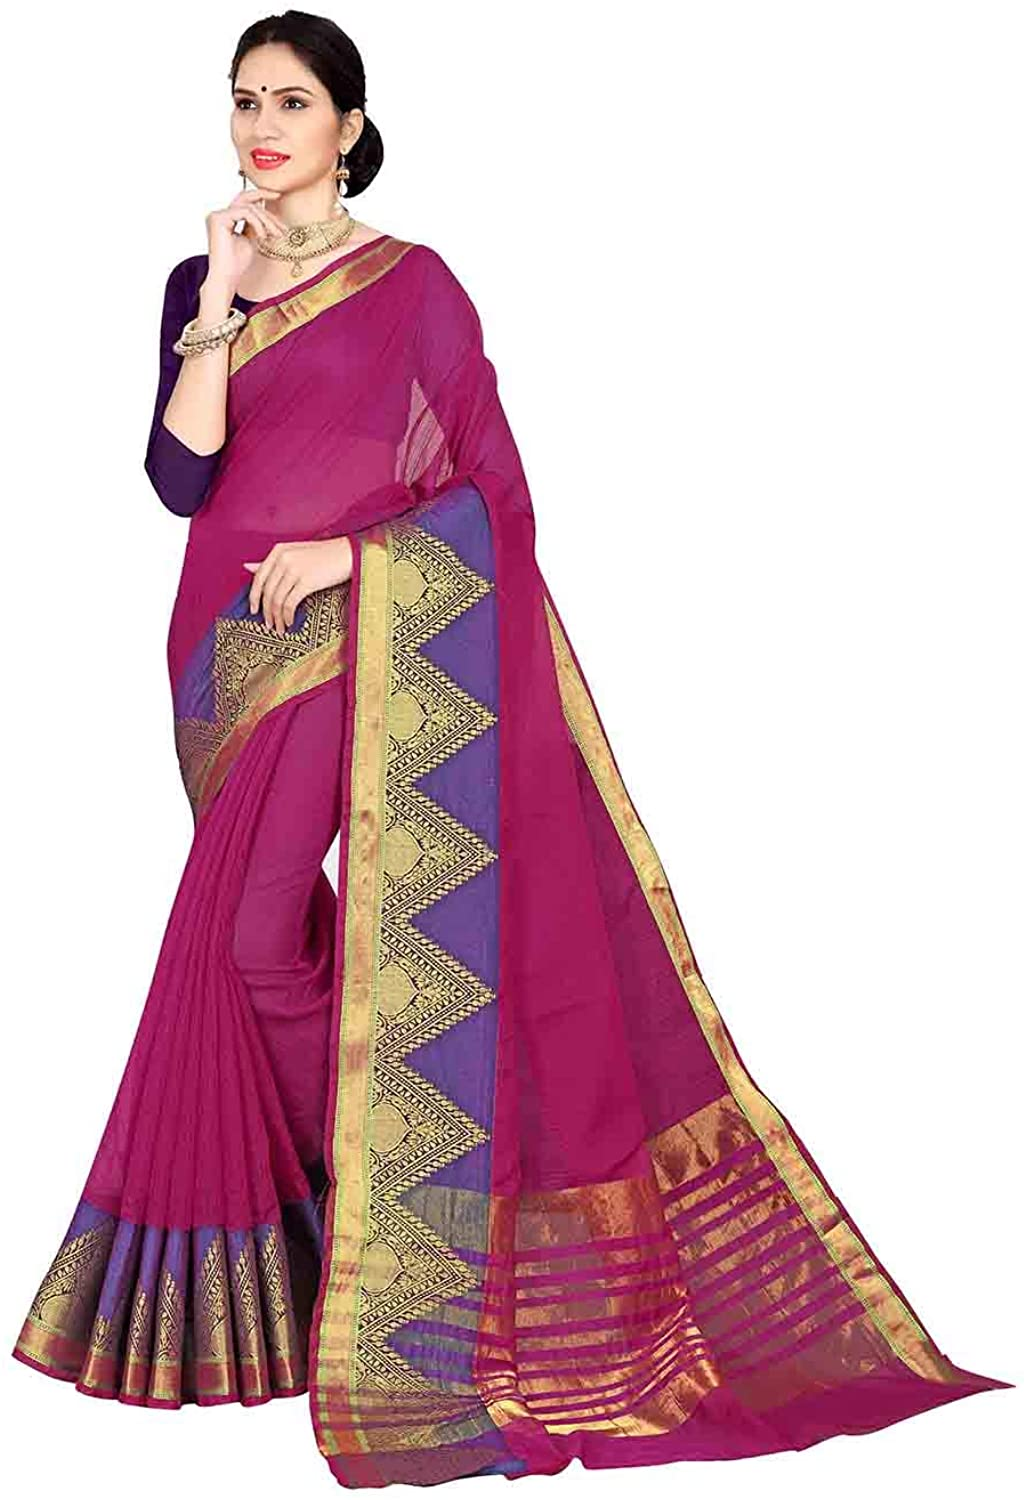 Saree for Women Bollywood Wedding Designer Pink Sari with Unstitched Blouse. ICW2572-8